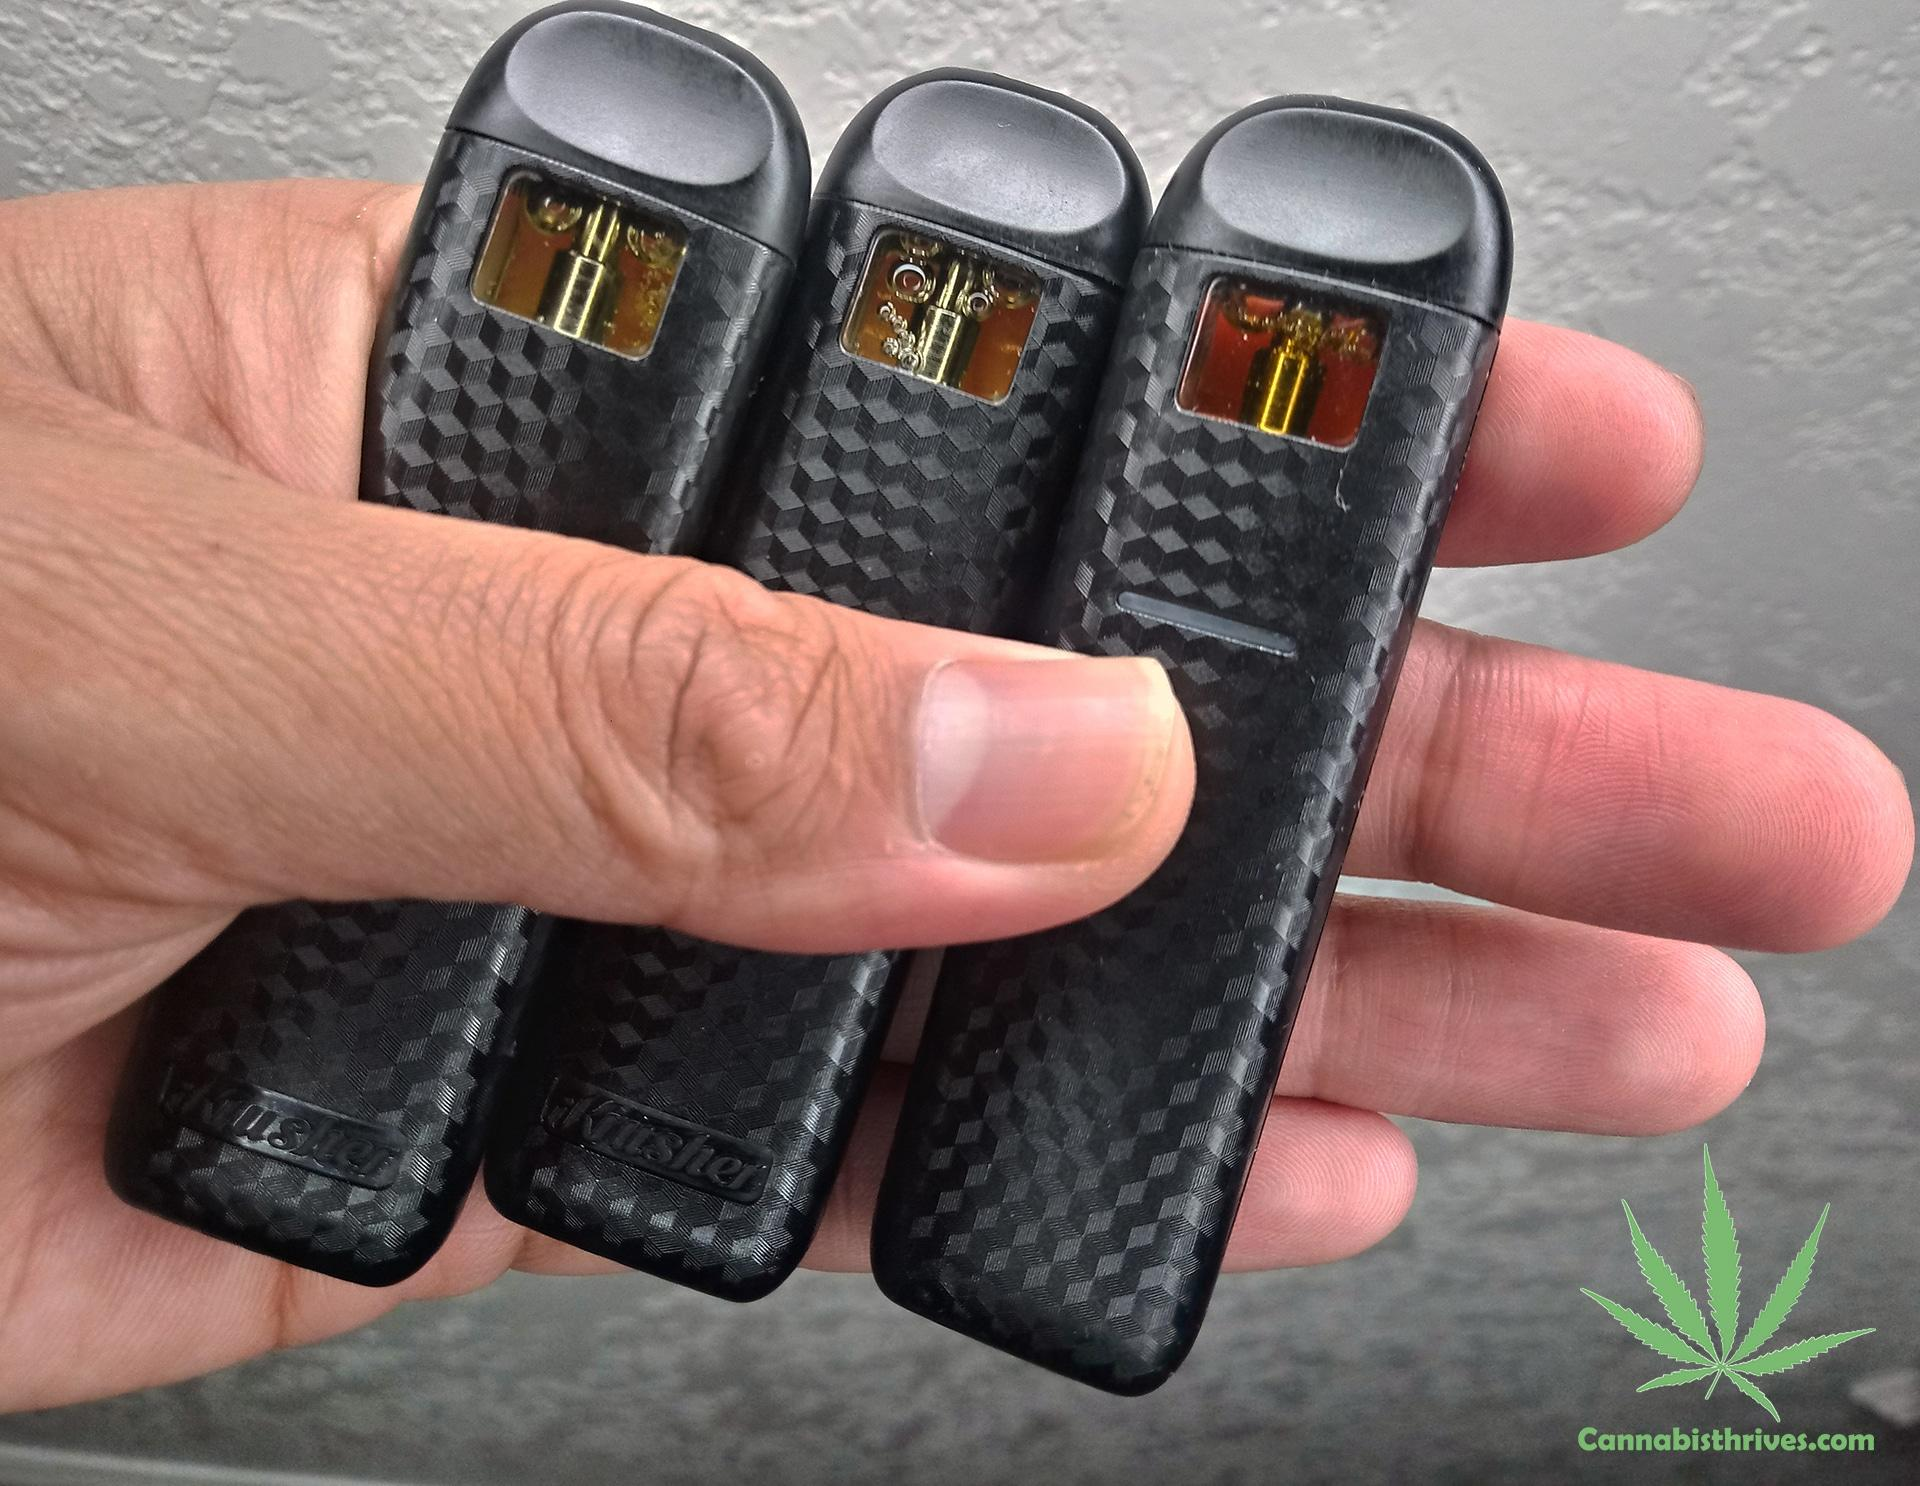 Ikrusher Tik Review: Ultra Portable Vaporizer For THC Oil